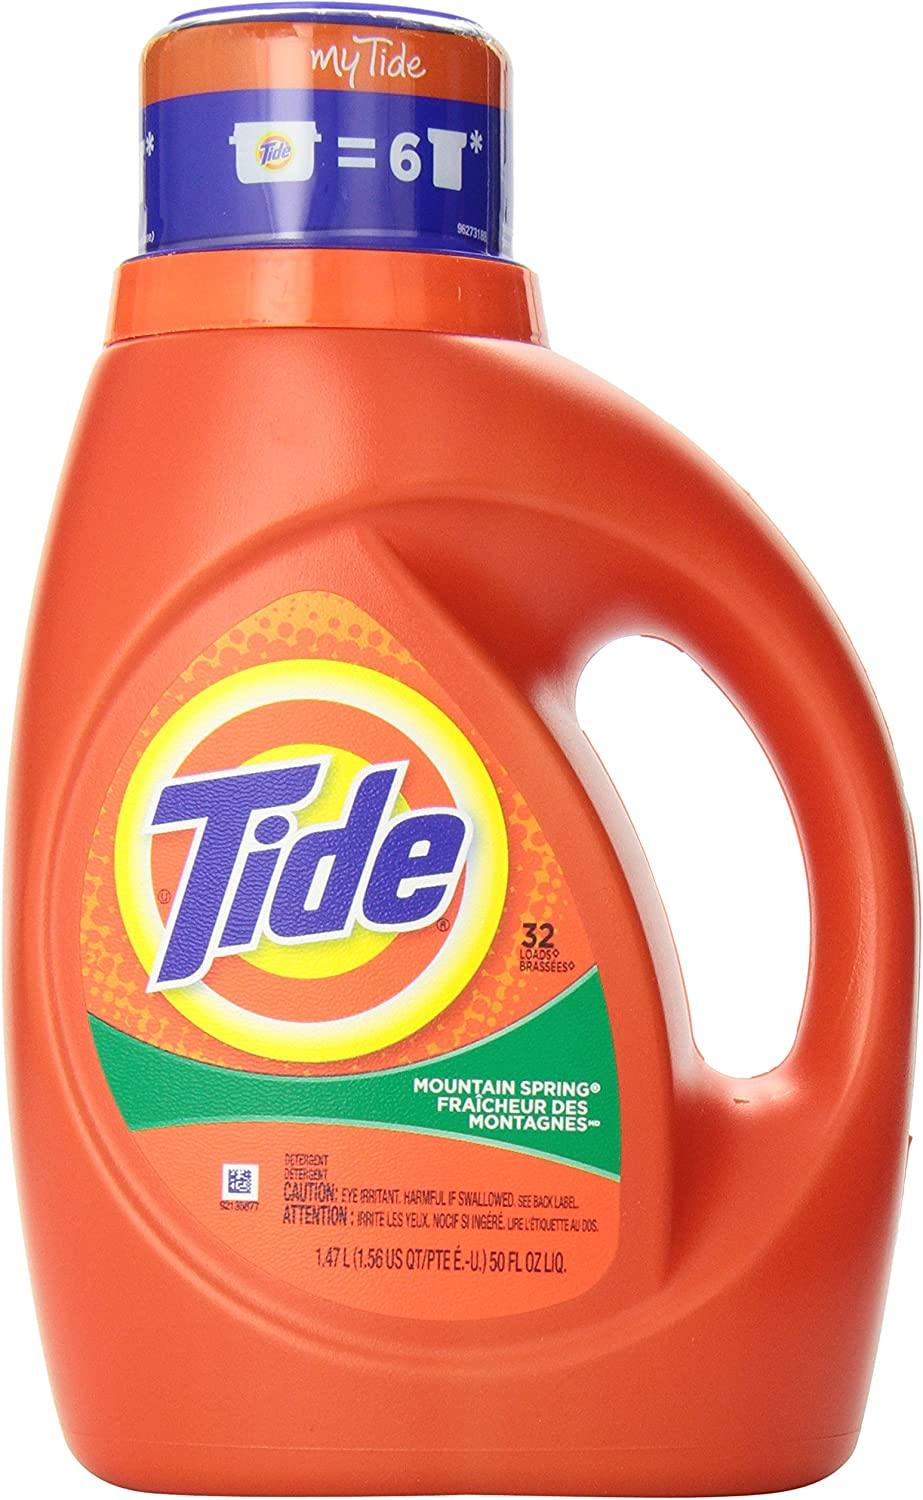 Tide Liquid Laundry Detergent with Acti-Lift, Mountain Spring Scent, 1.47 L (32 Loads)